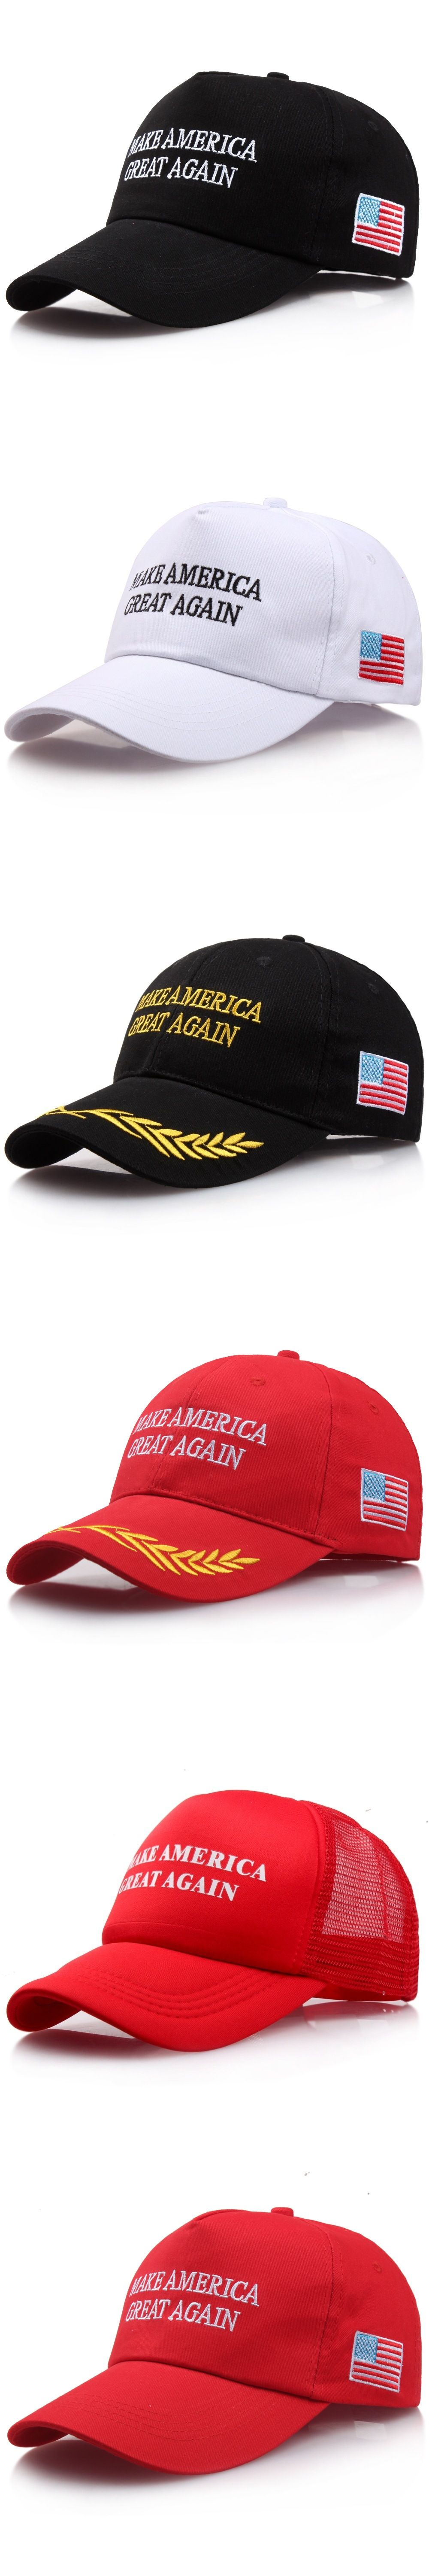 37e988cd4af Make America Great Again Baseball Cap Swag Donald Trump Speech Hats For Men  Casual Snapback Hat